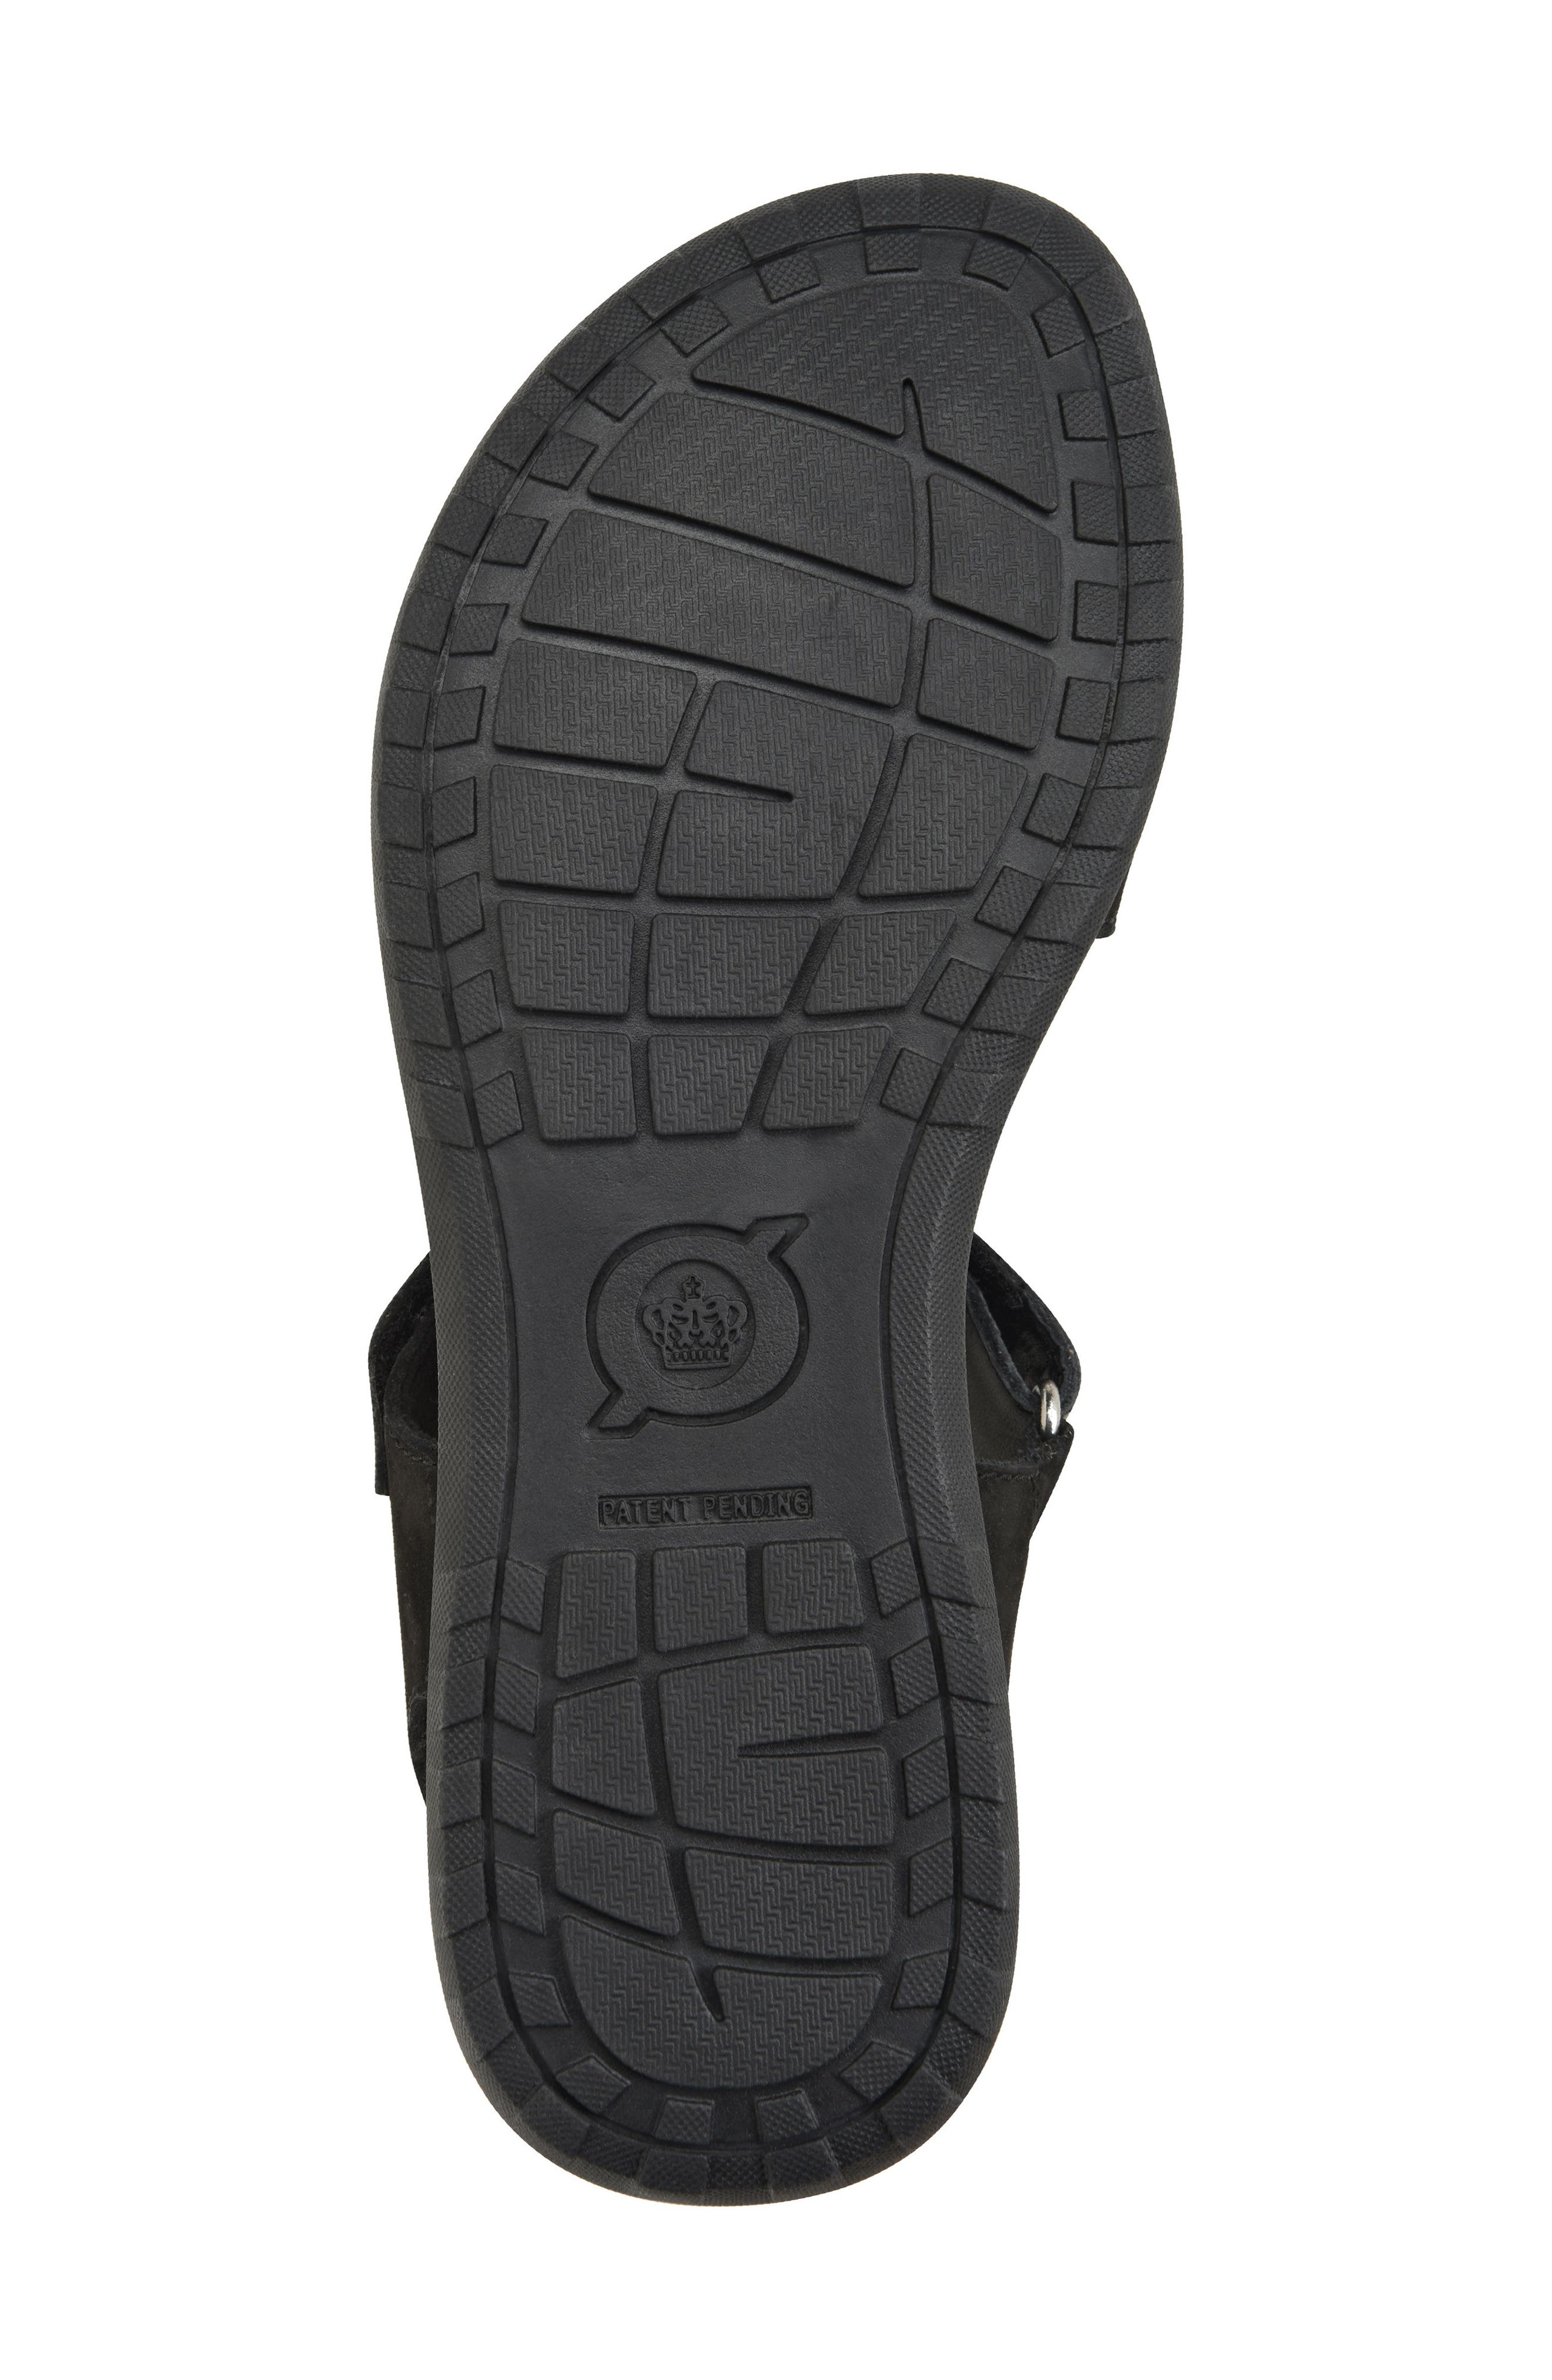 Nirvana Sandal,                             Alternate thumbnail 6, color,                             Black Leather